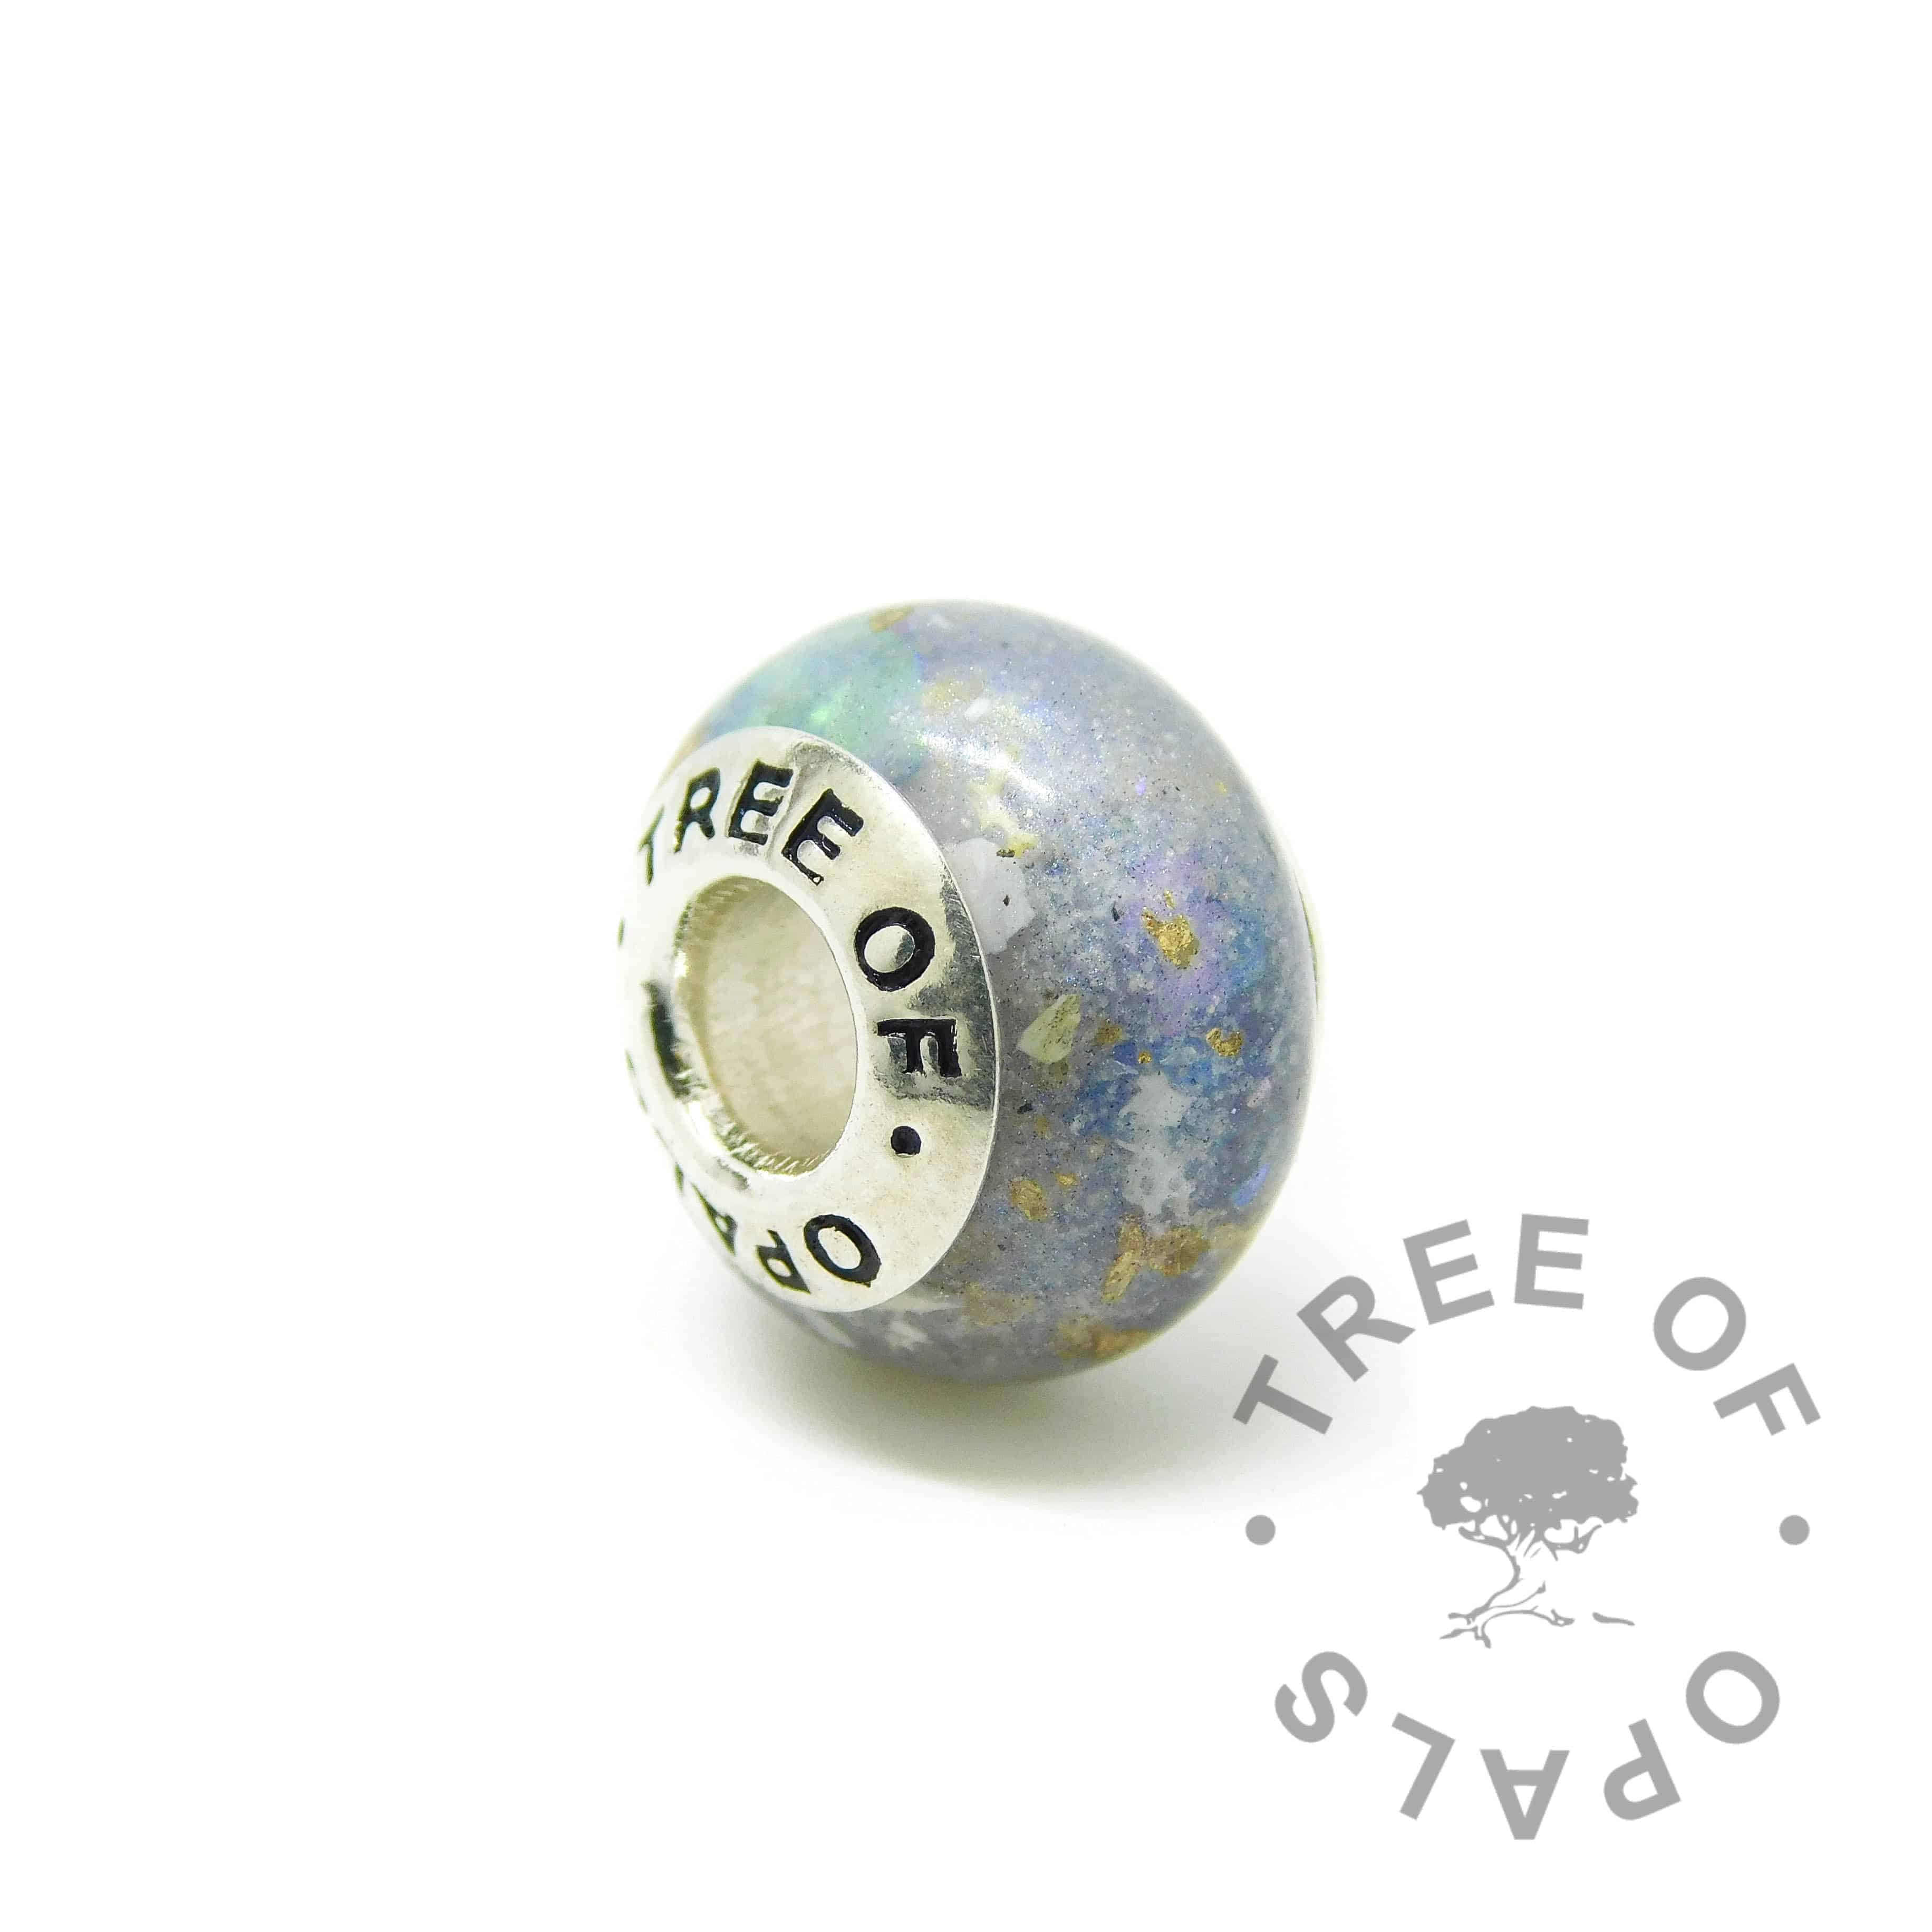 Cremation ash charm with Aegean blue resin sparkle mix, genuine rough natural opal slices October birthstone. Solid sterling silver Tree of Opals signature core (925 stamped on the back). Watermarked copyright Tree of Opals memorial jewellery image